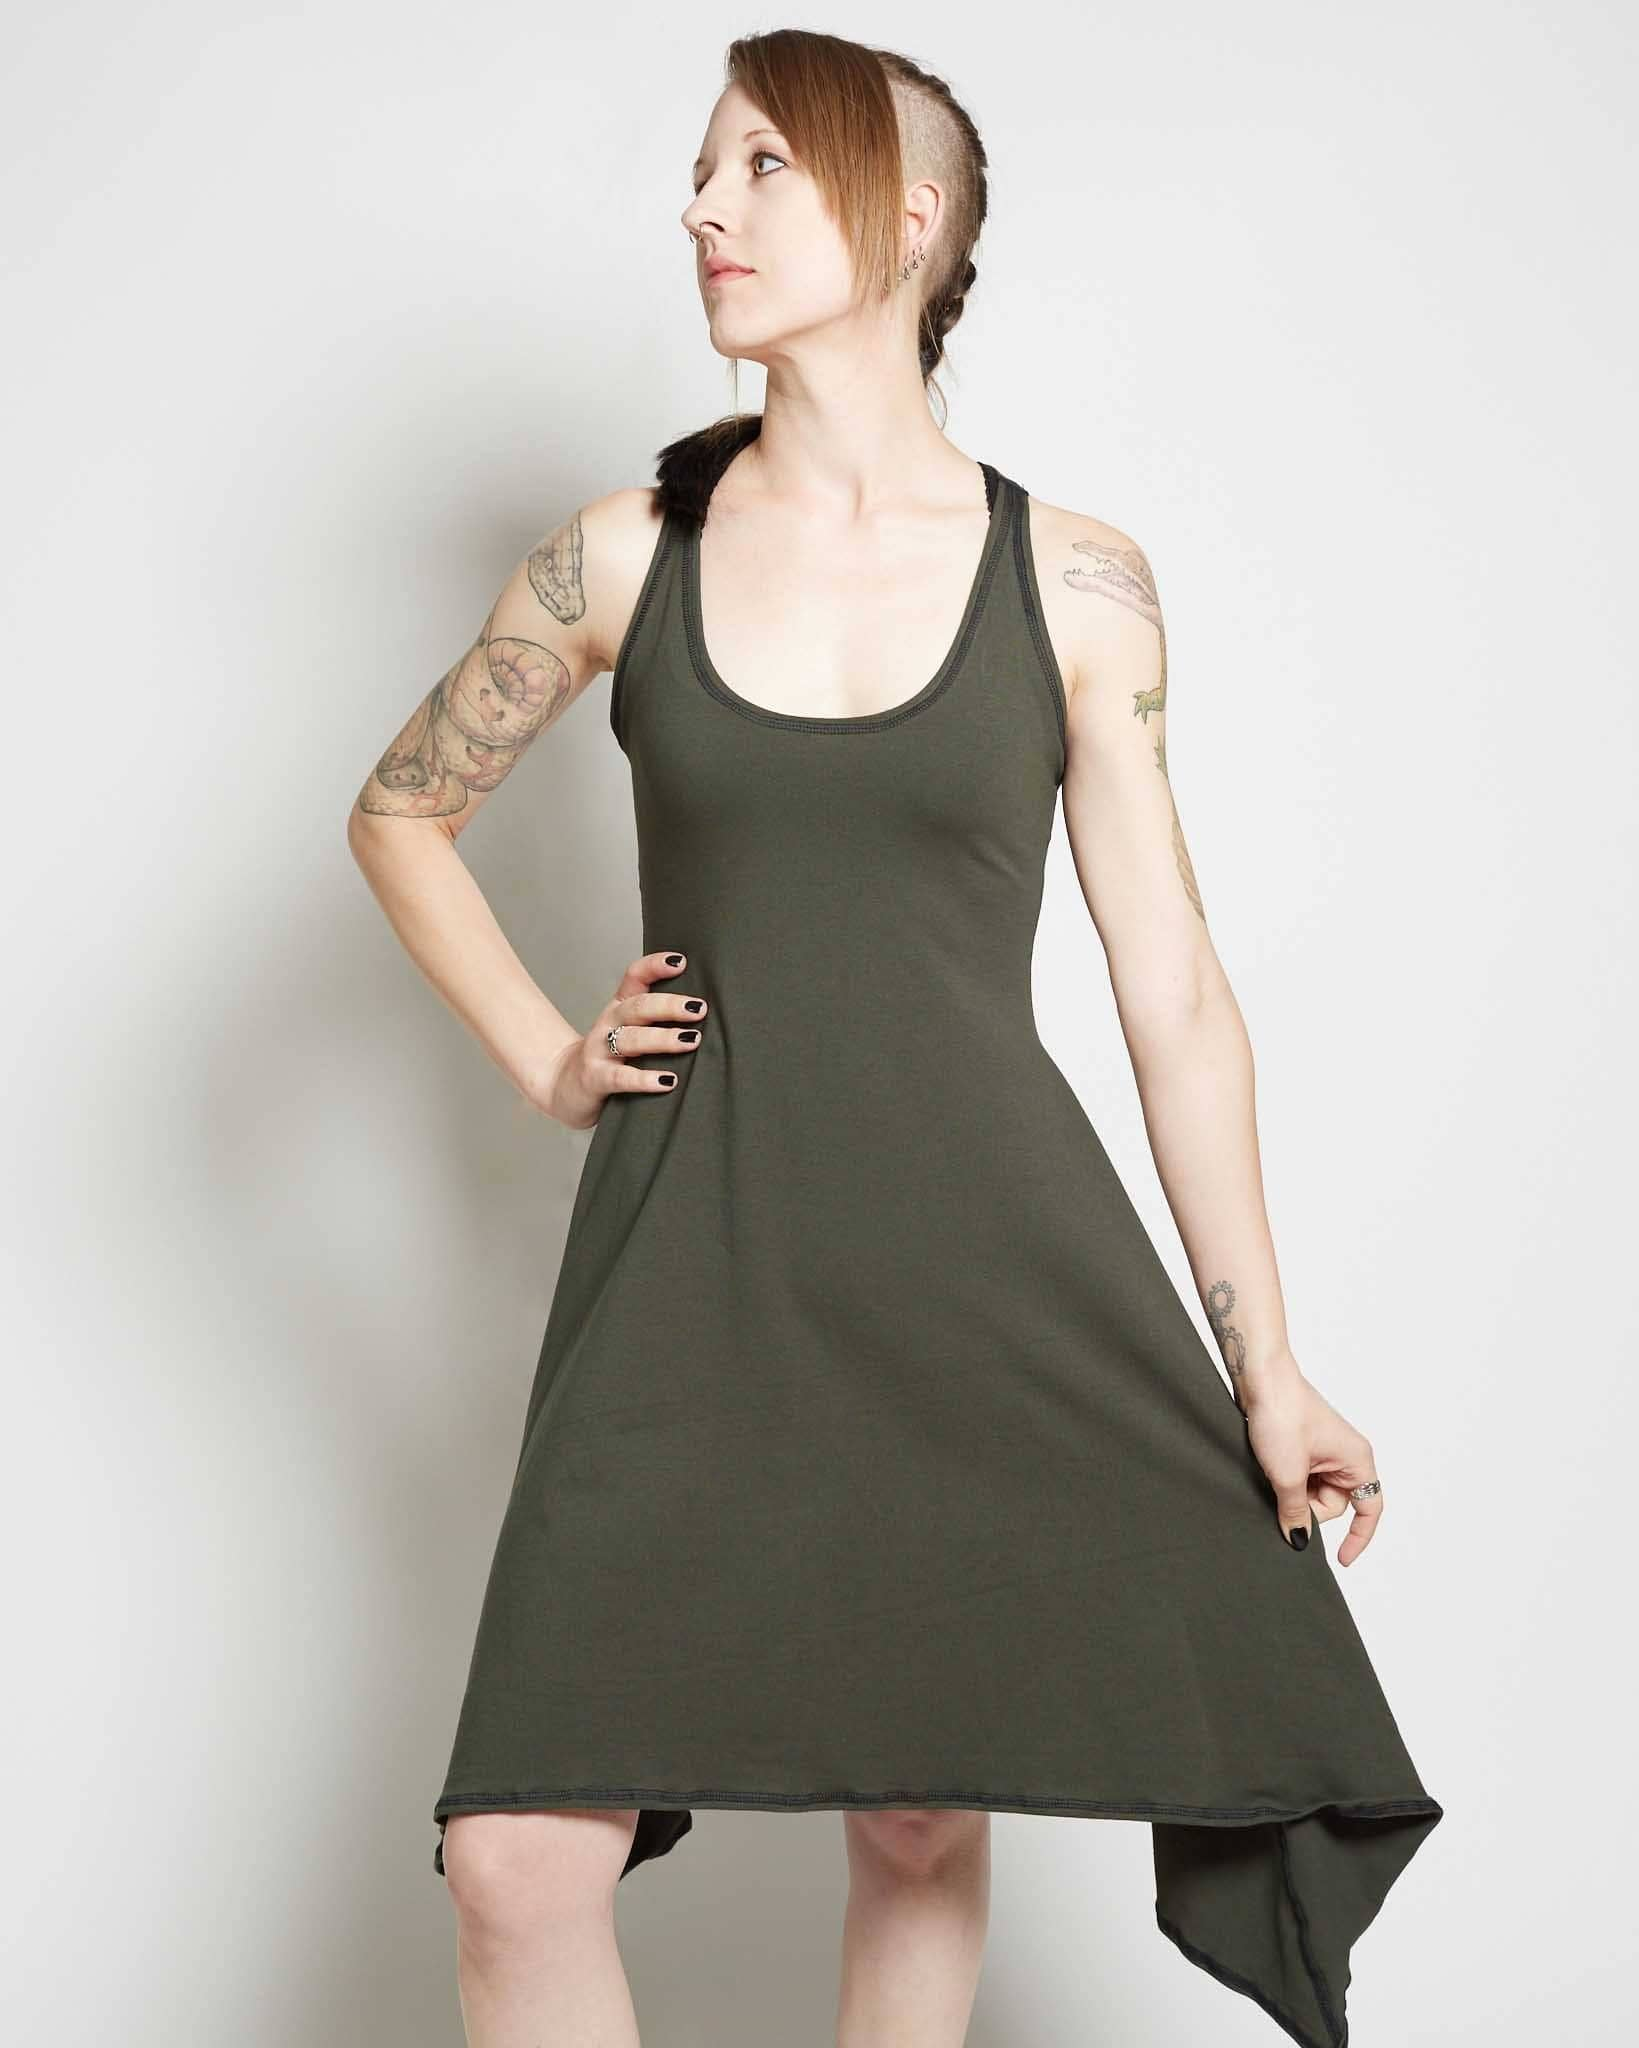 futuristic clothing for women jersey dress